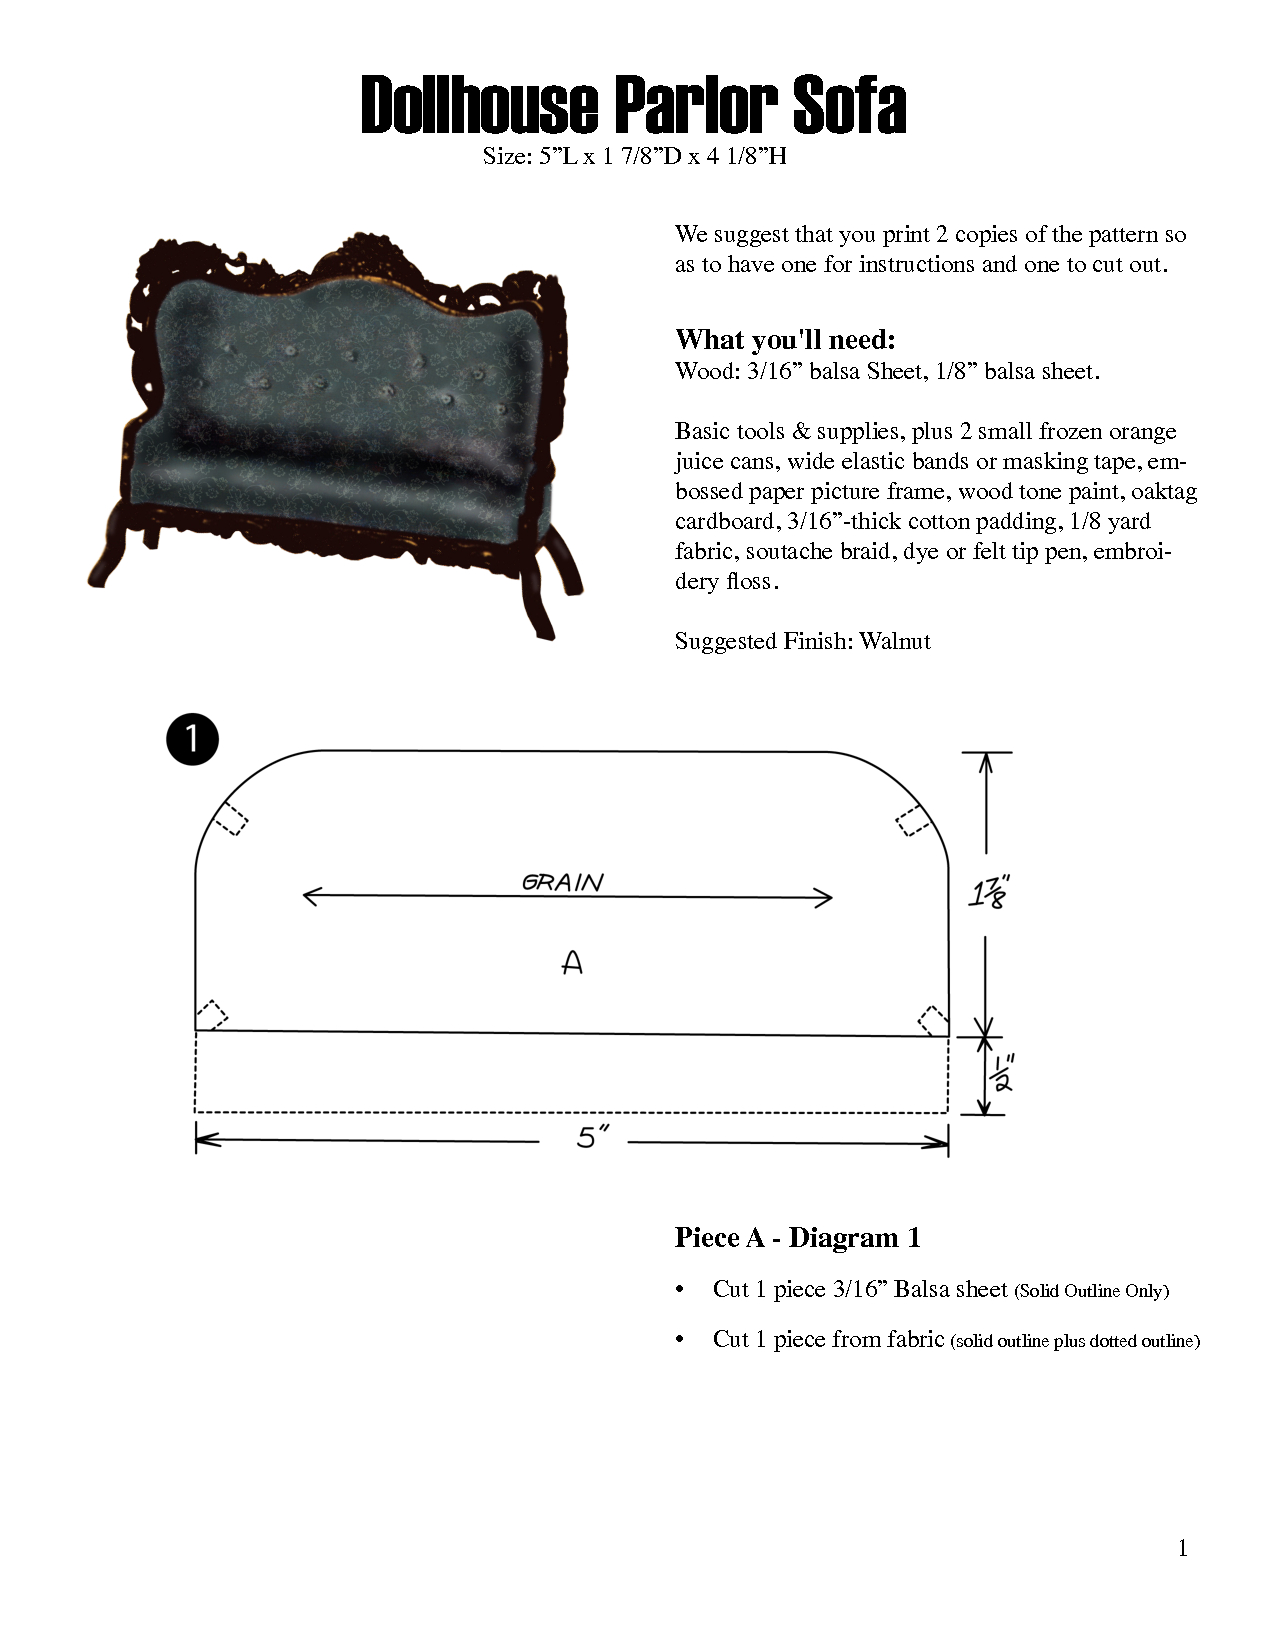 Free Dollhouse Furniture Patterns | Scope Of Work Template - Free Printable Dollhouse Furniture Patterns